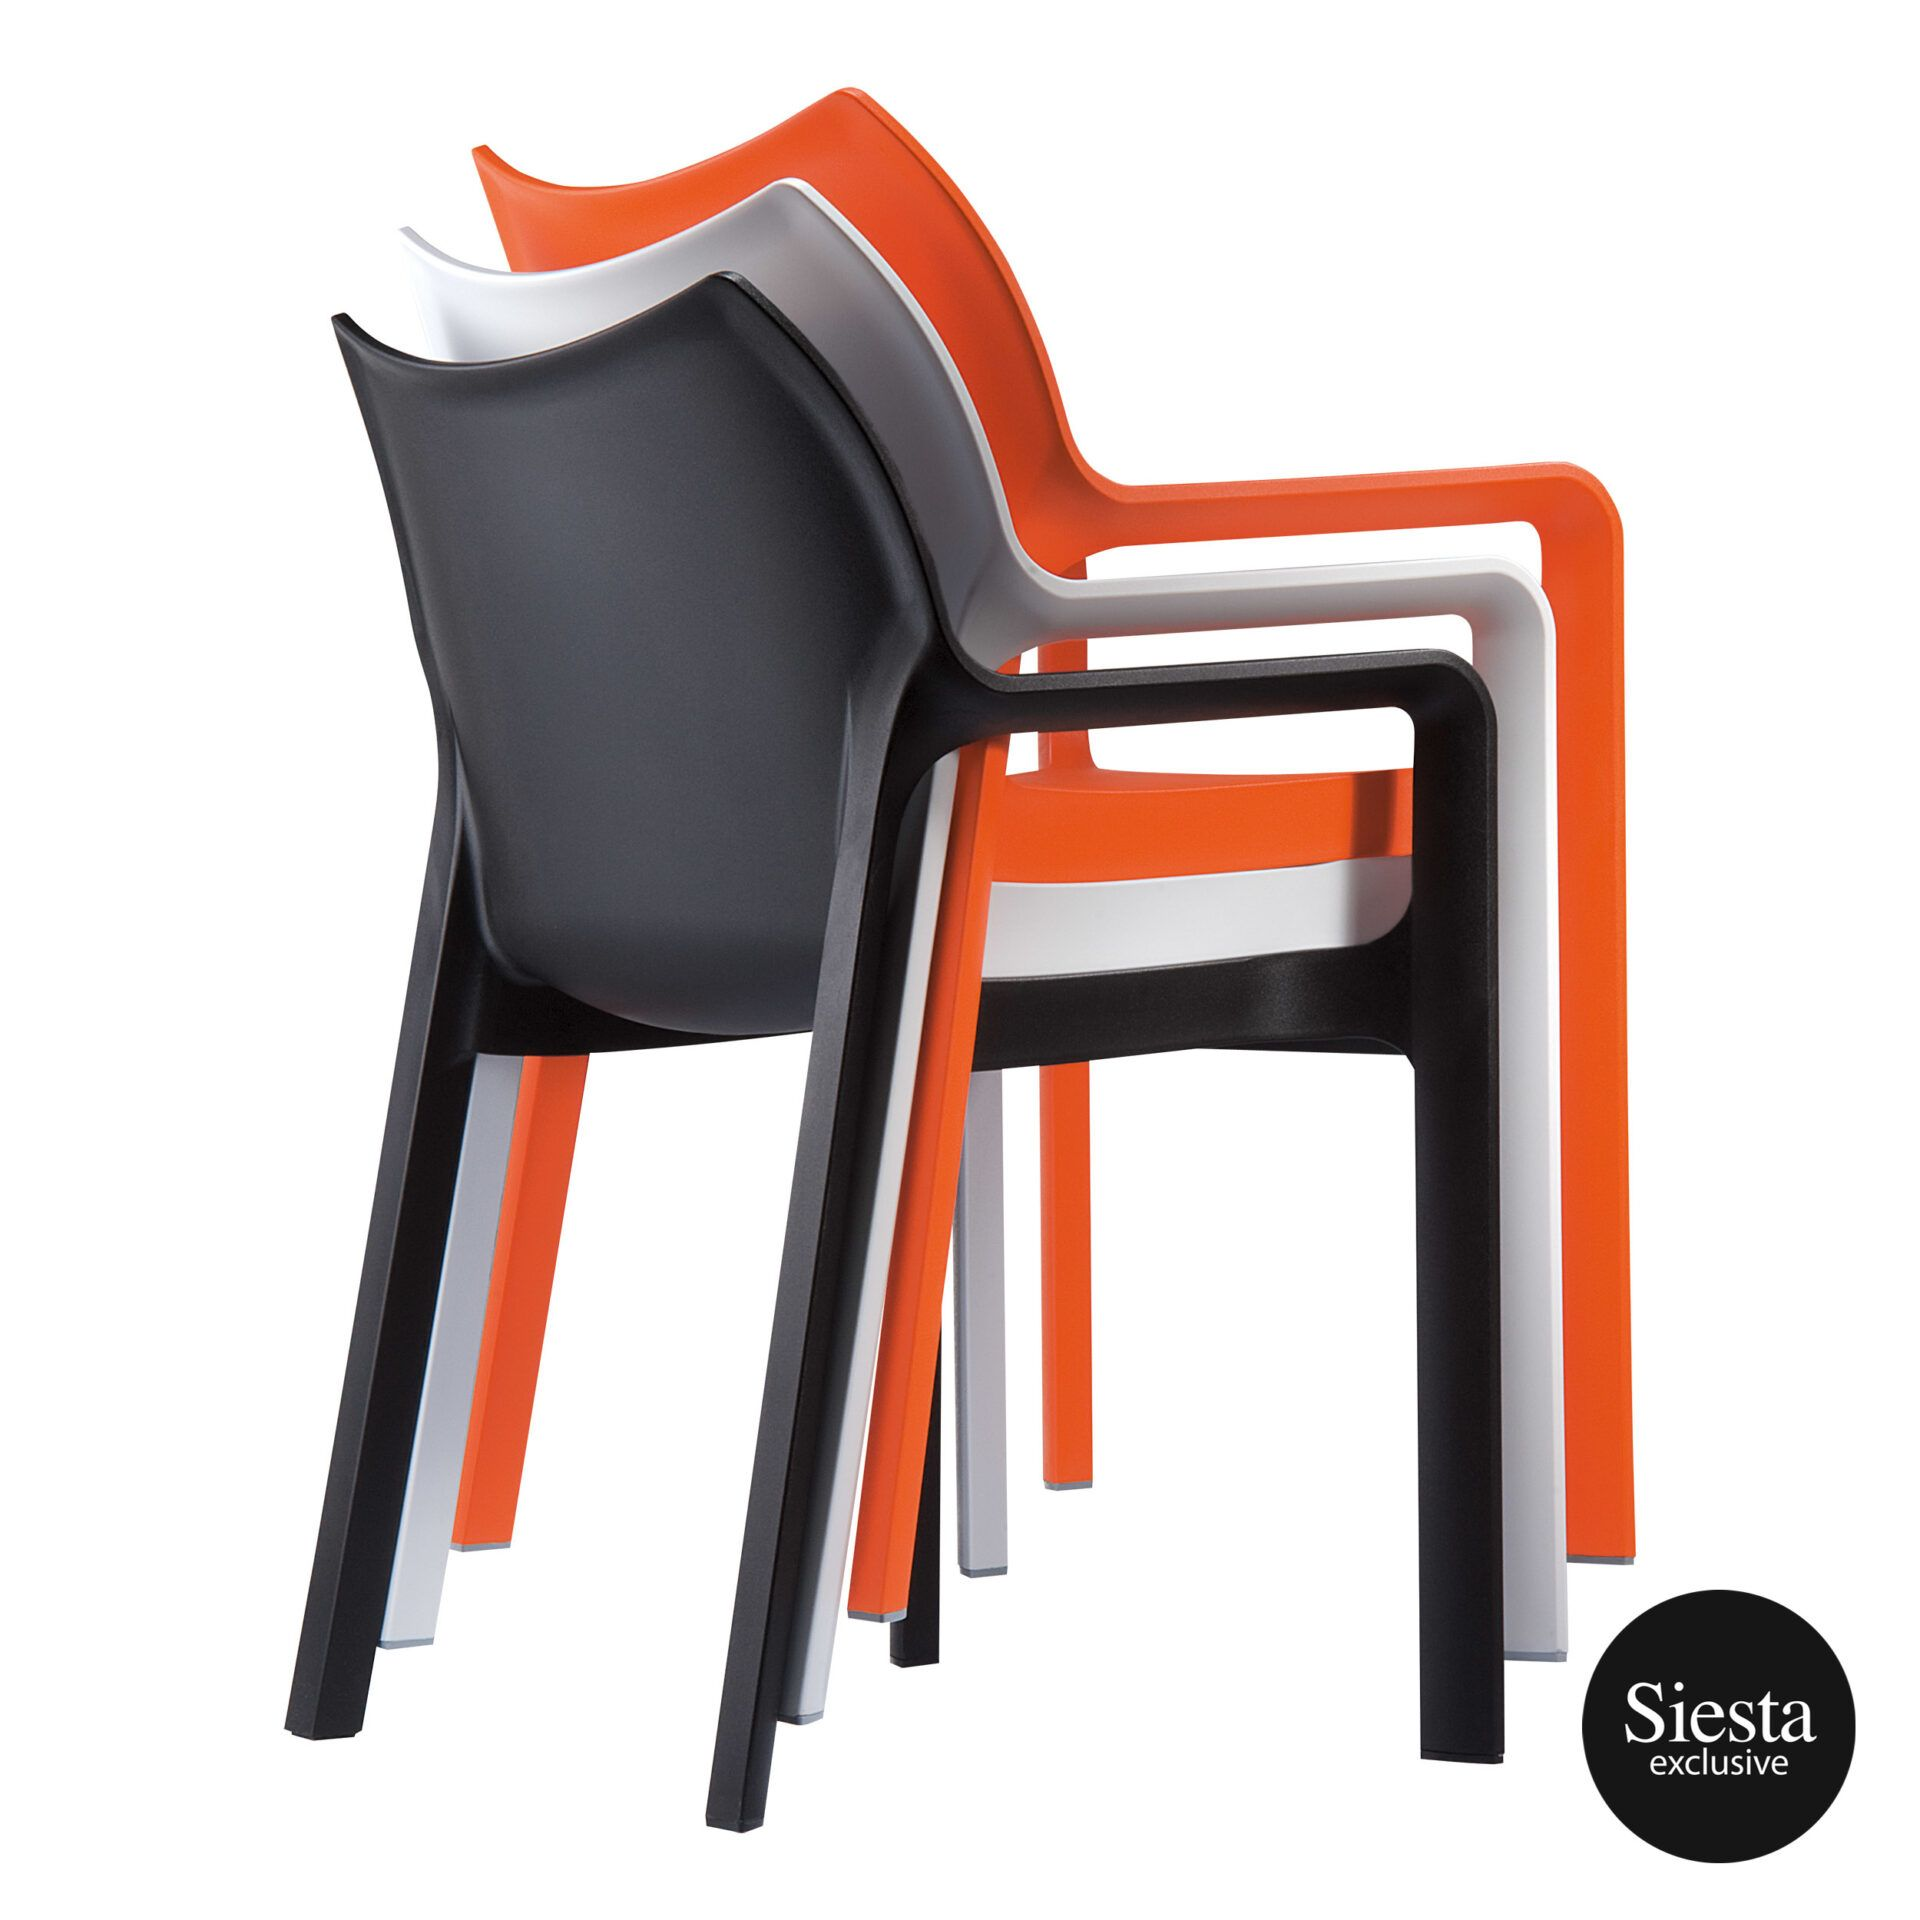 outdoor plastic seating diva chair stack 01 1